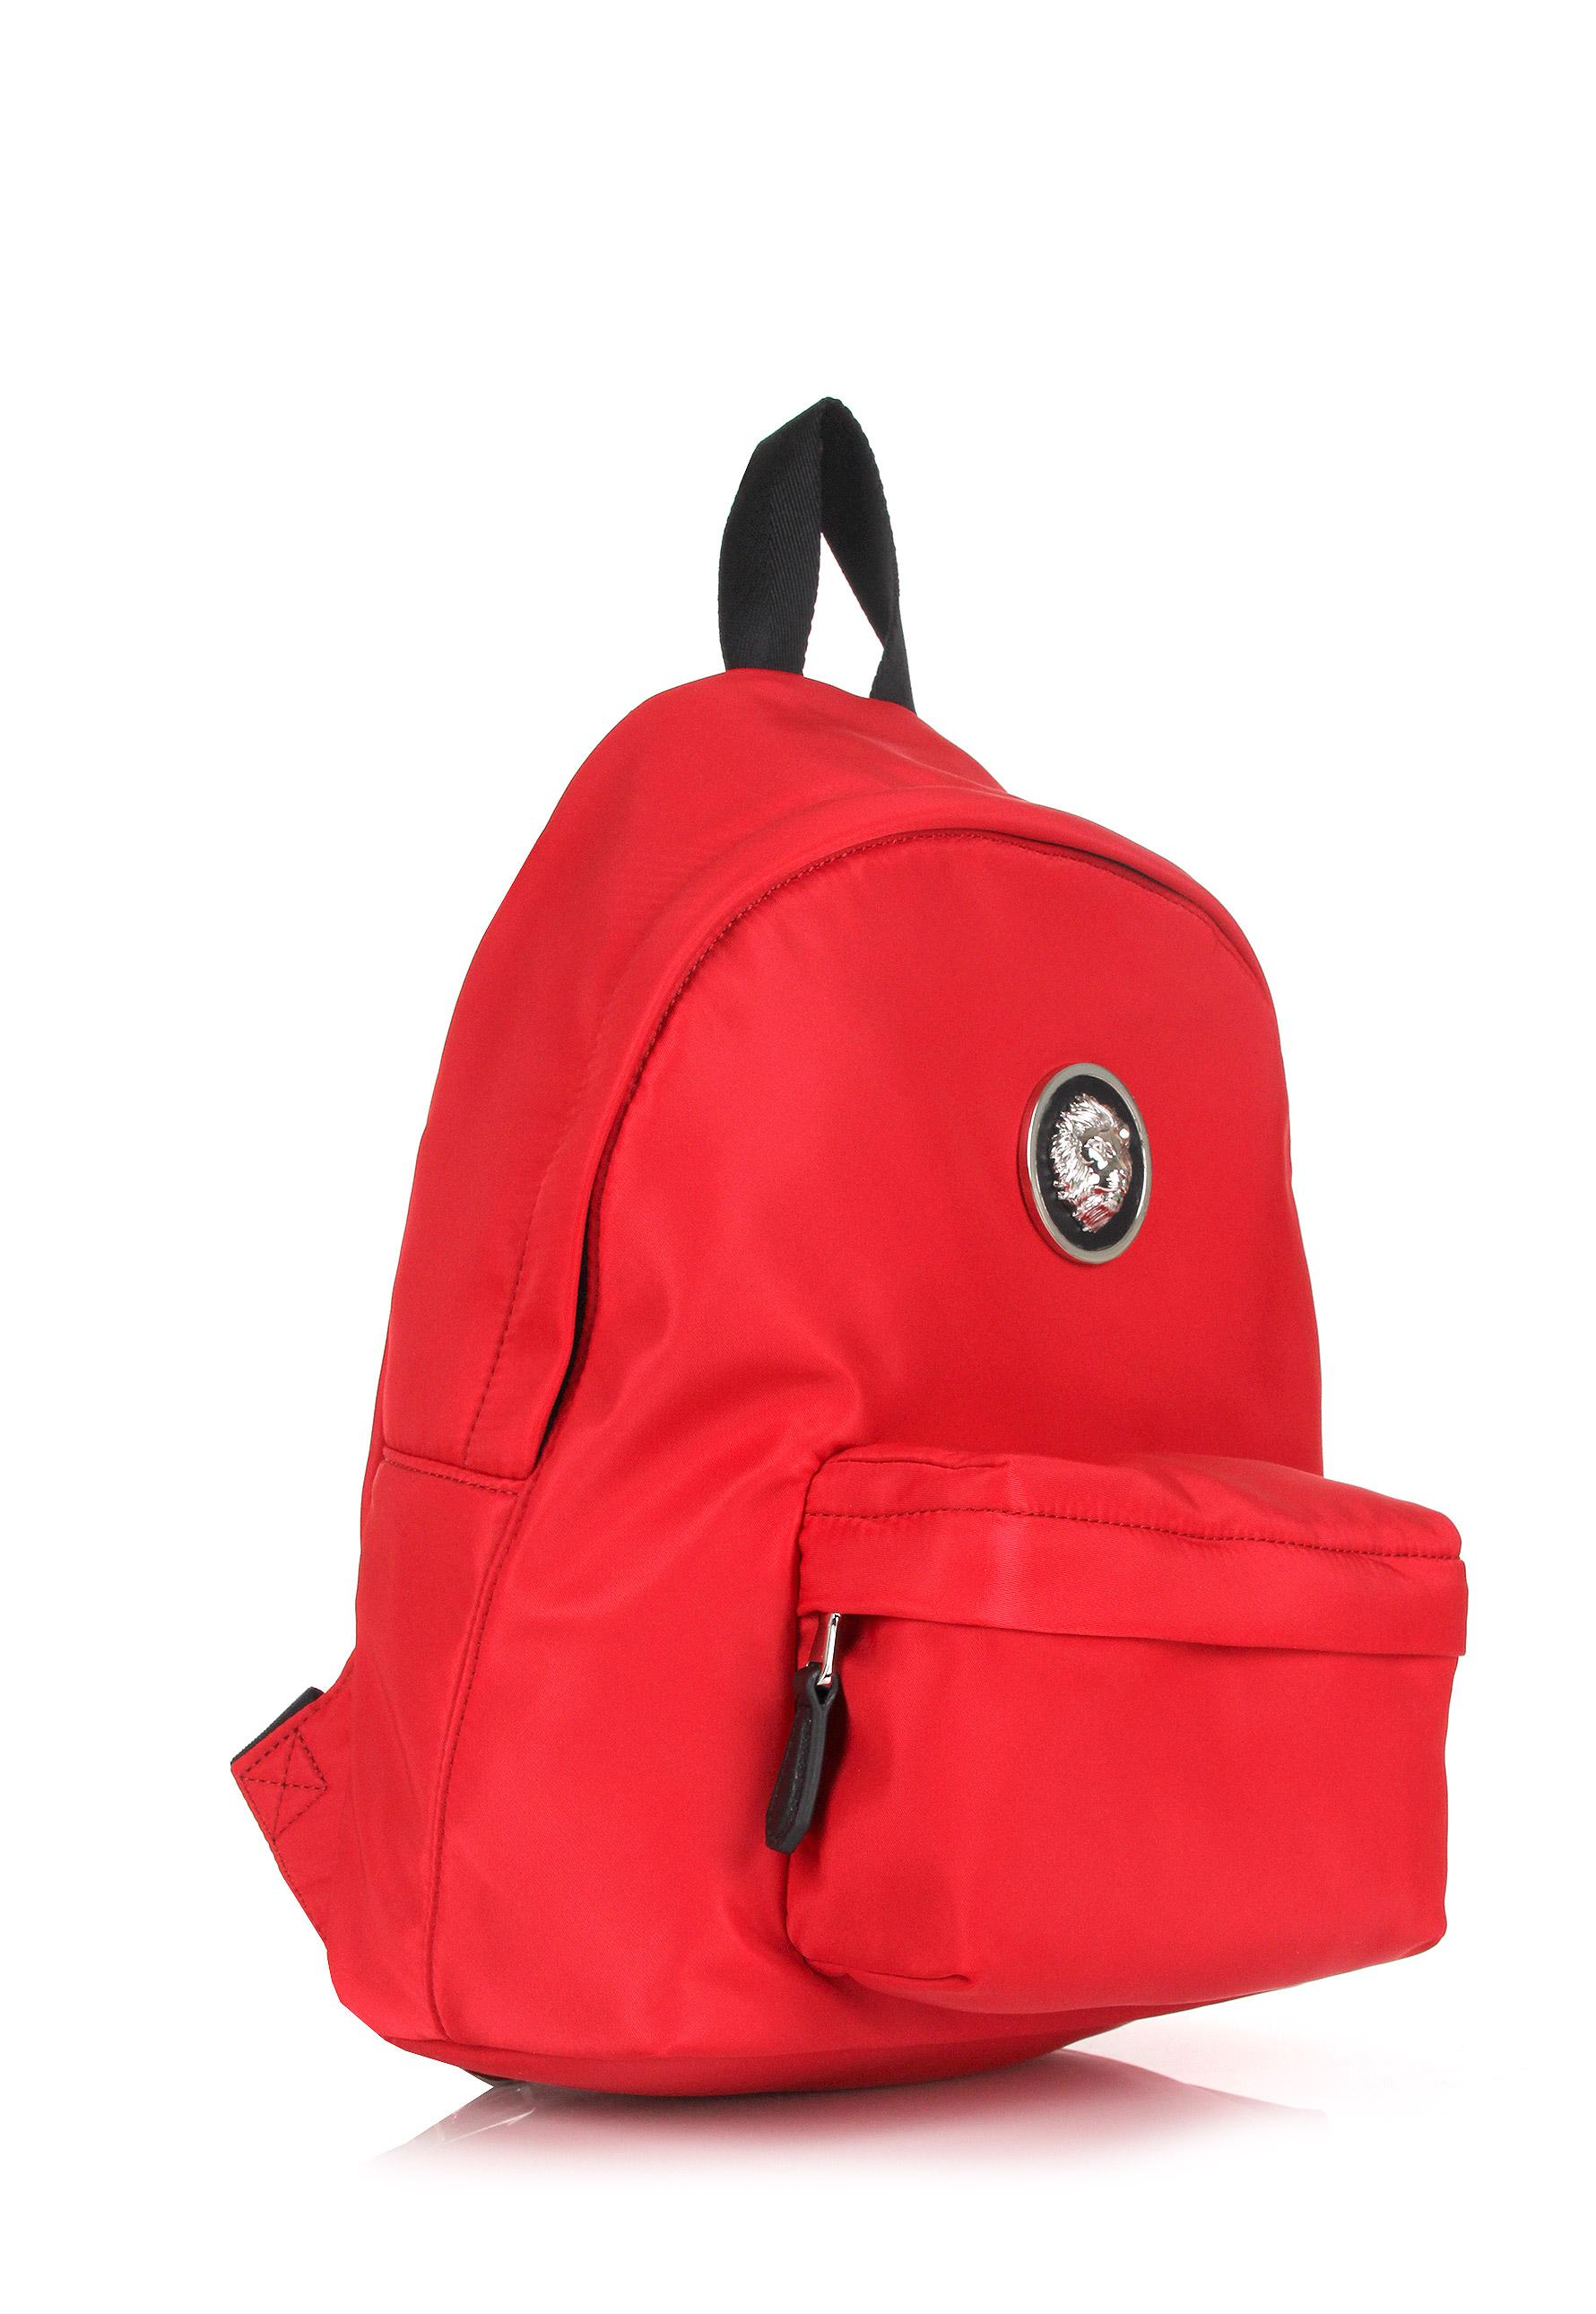 589098e150fb Lyst - Versus Small Nylon Lion Head Backpack Red nickel in Red